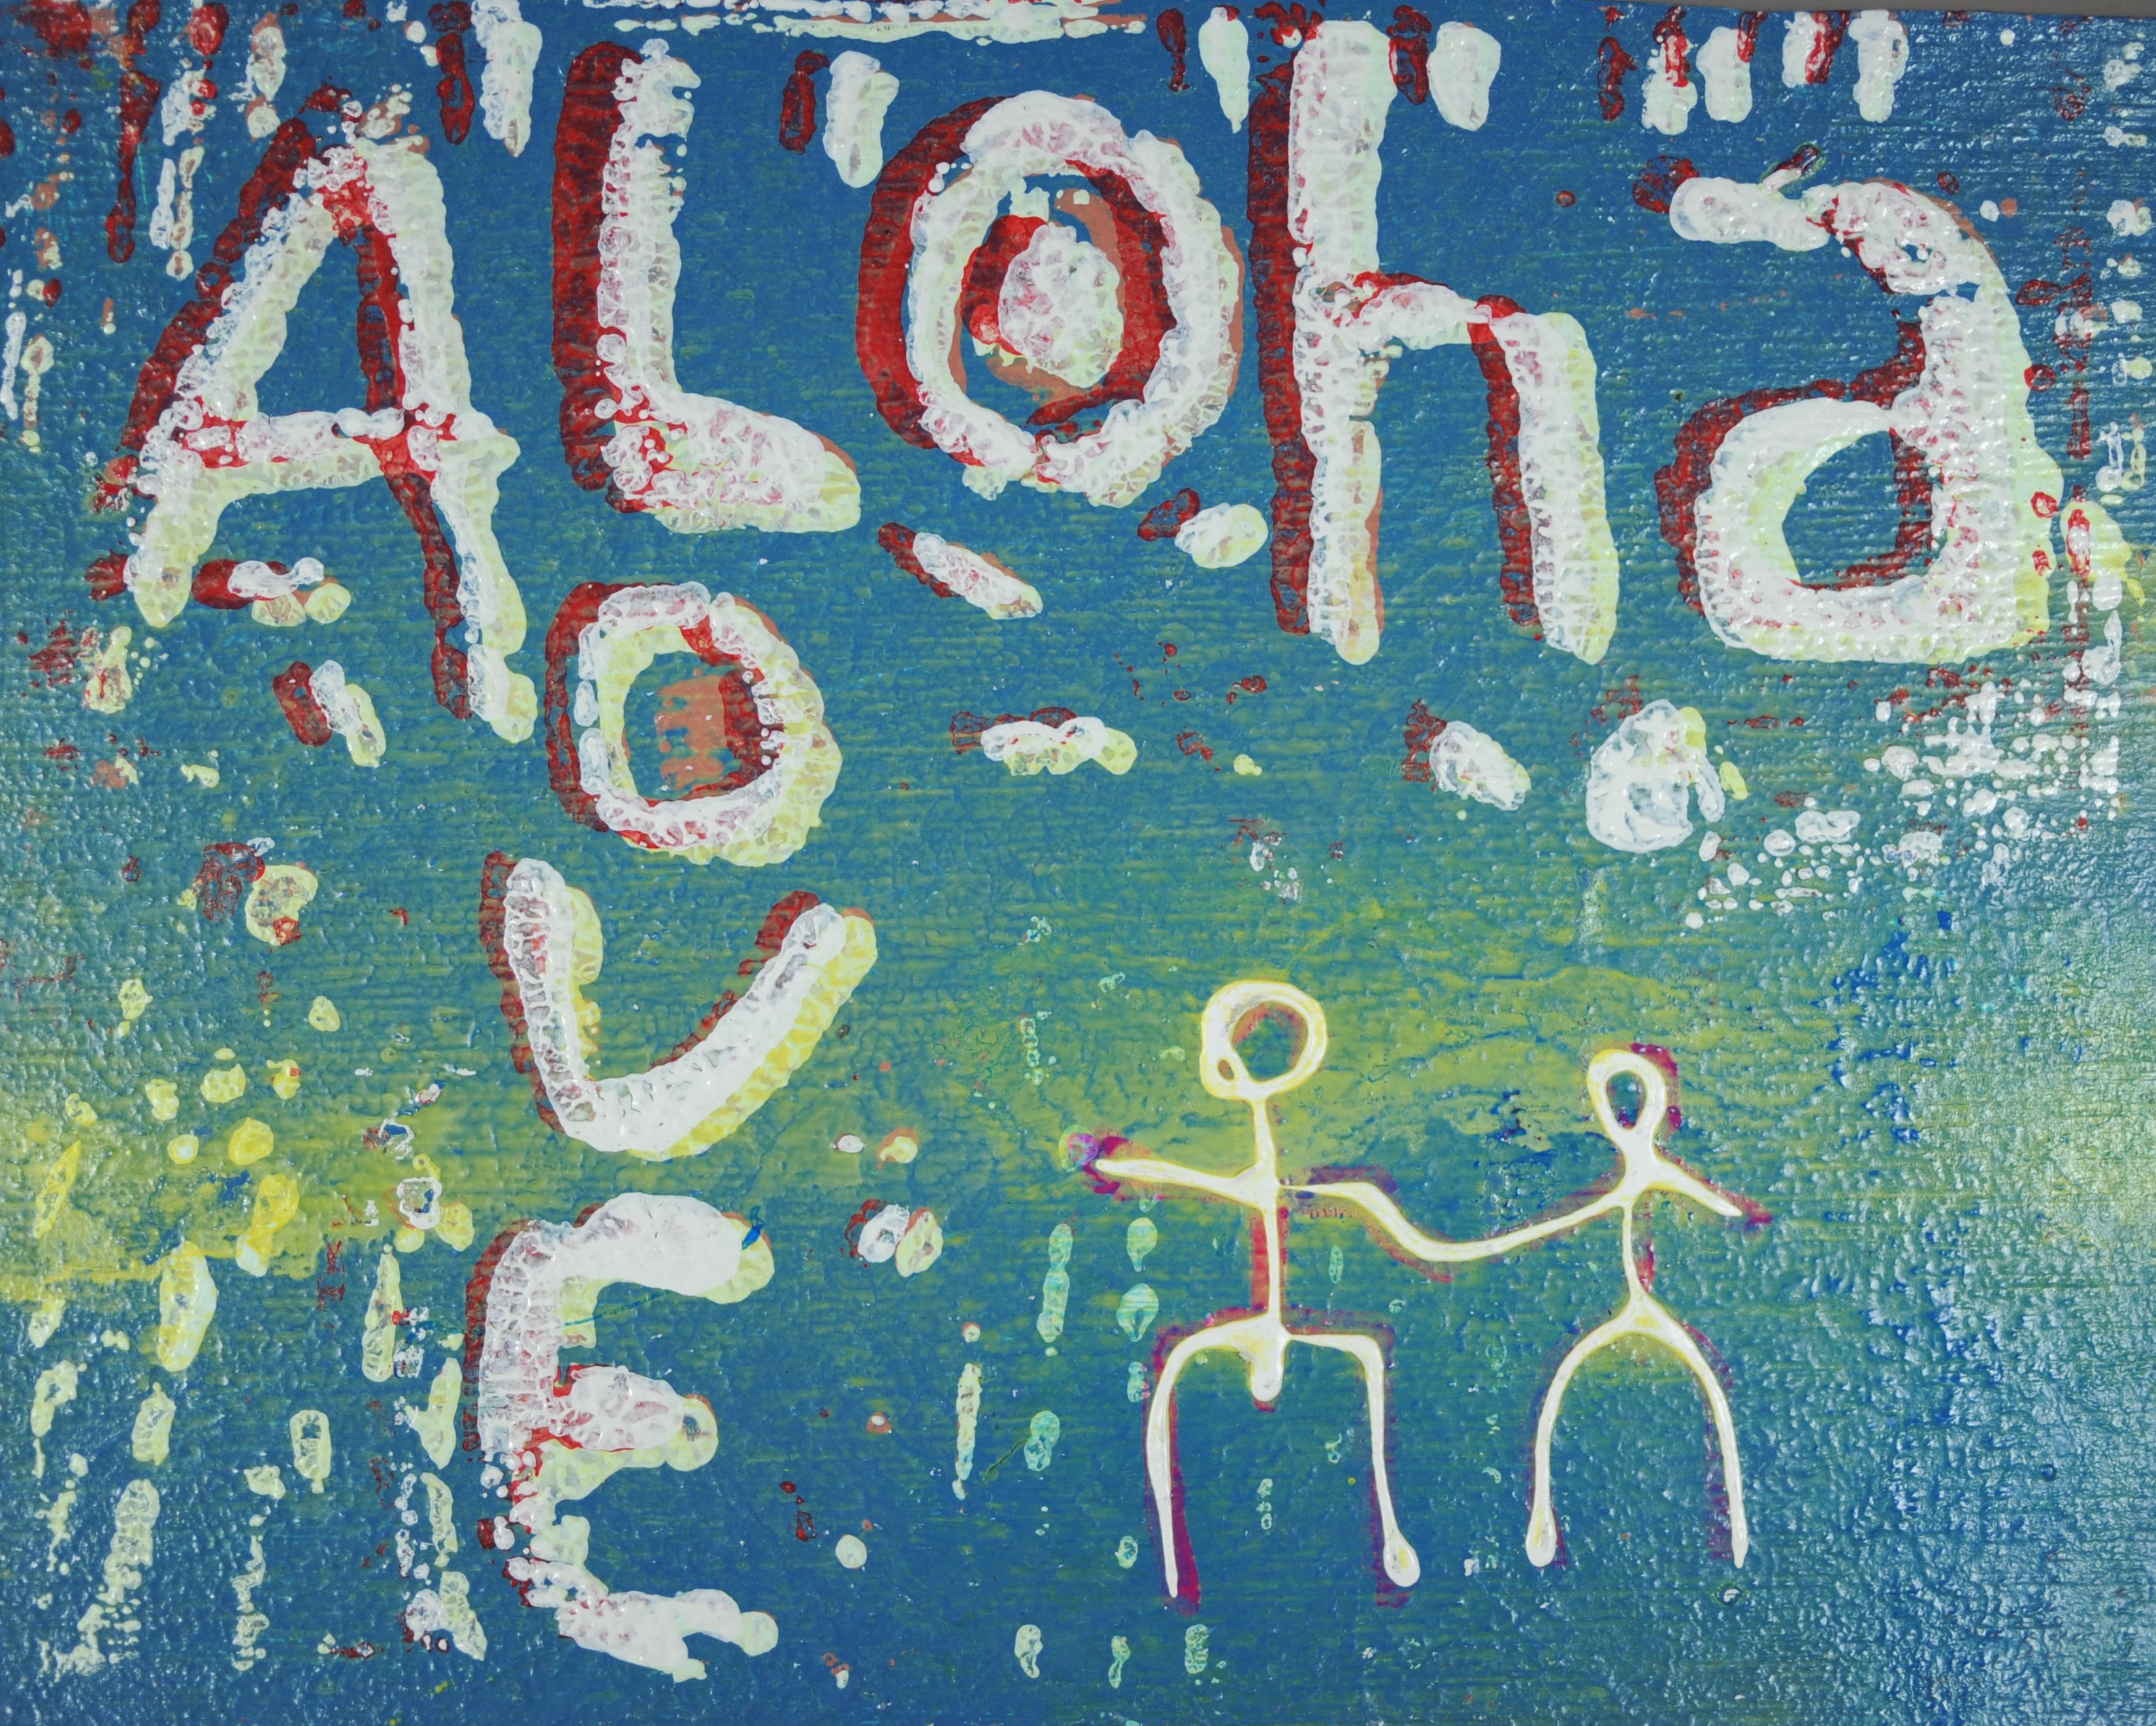 Robert Gann; Aloha Love 4, 2020, Original Printmaking Other, 10 x 10 inches. Artwork description: 241 inspired by the culture of Hawaii, acrylic mud print...